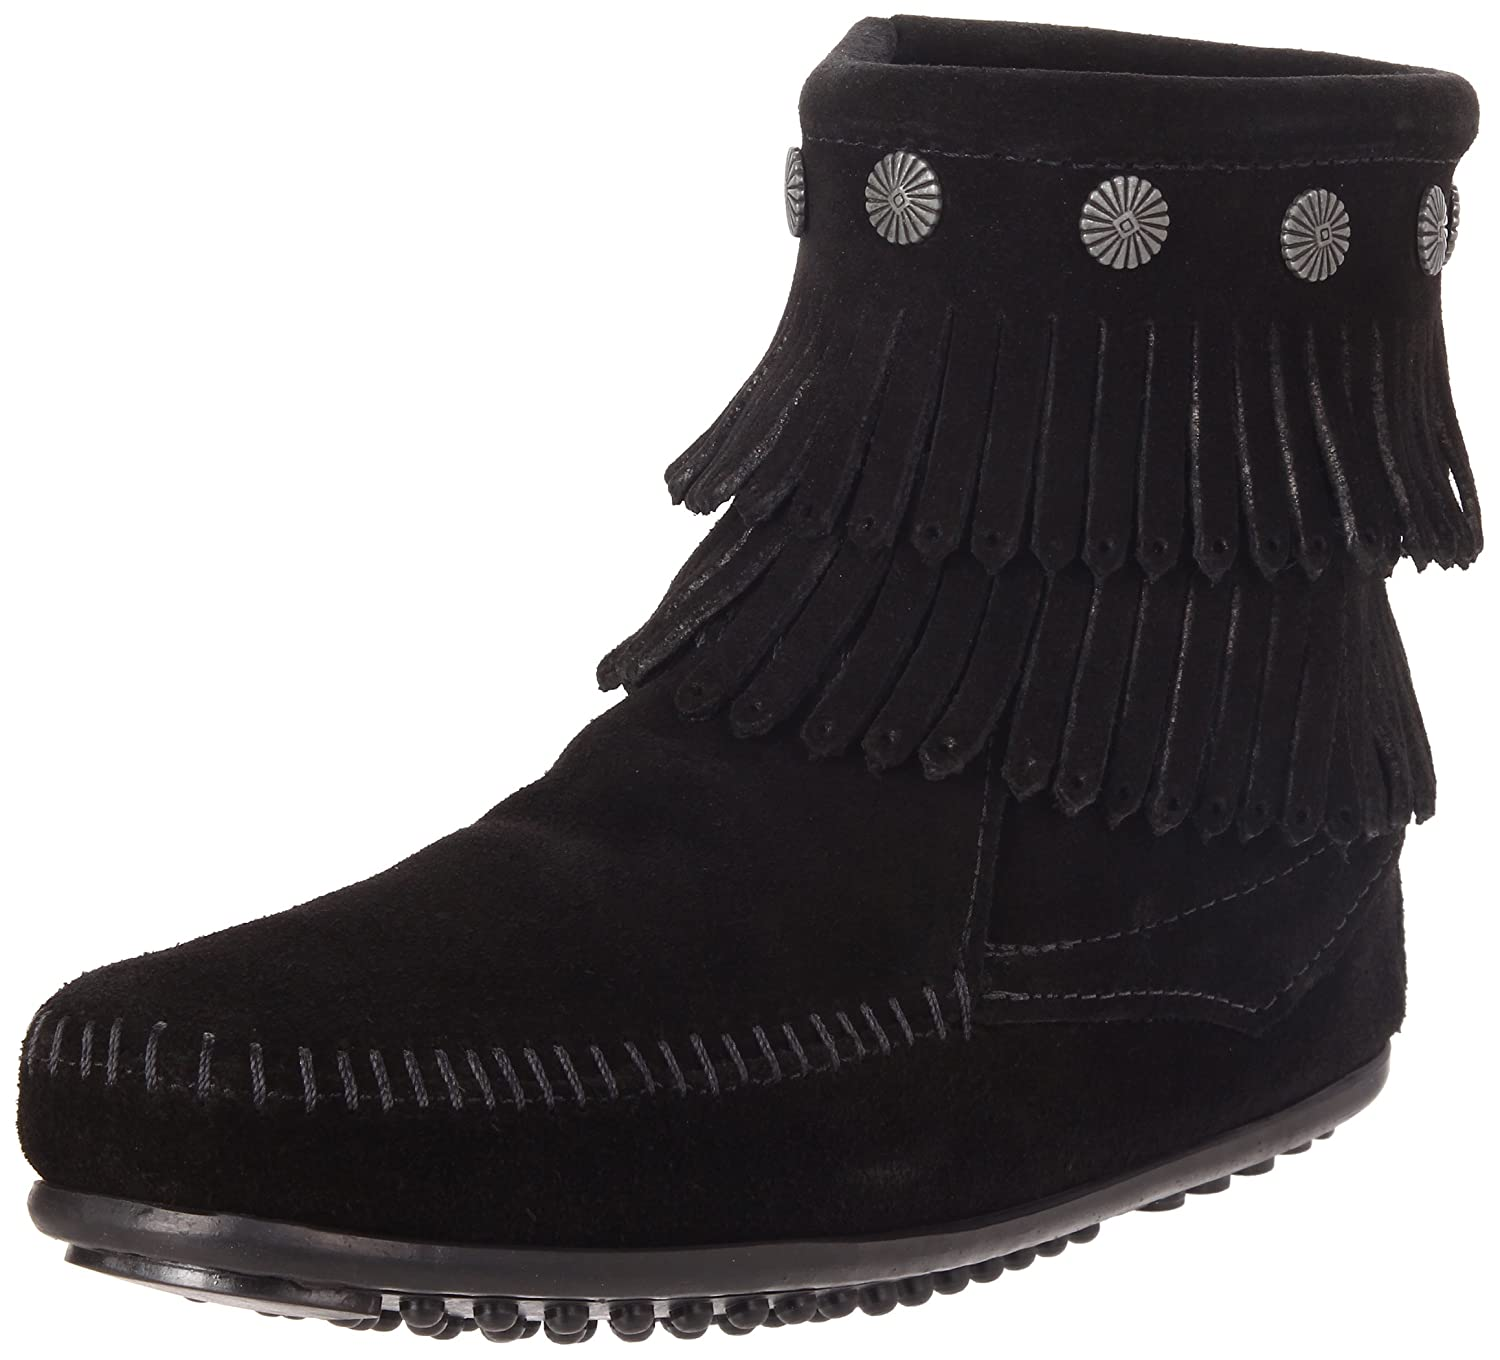 Minnetonka Women's Double-Fringe Side-Zip Boot B004UETQ5C 7.5 B(M) US|Black